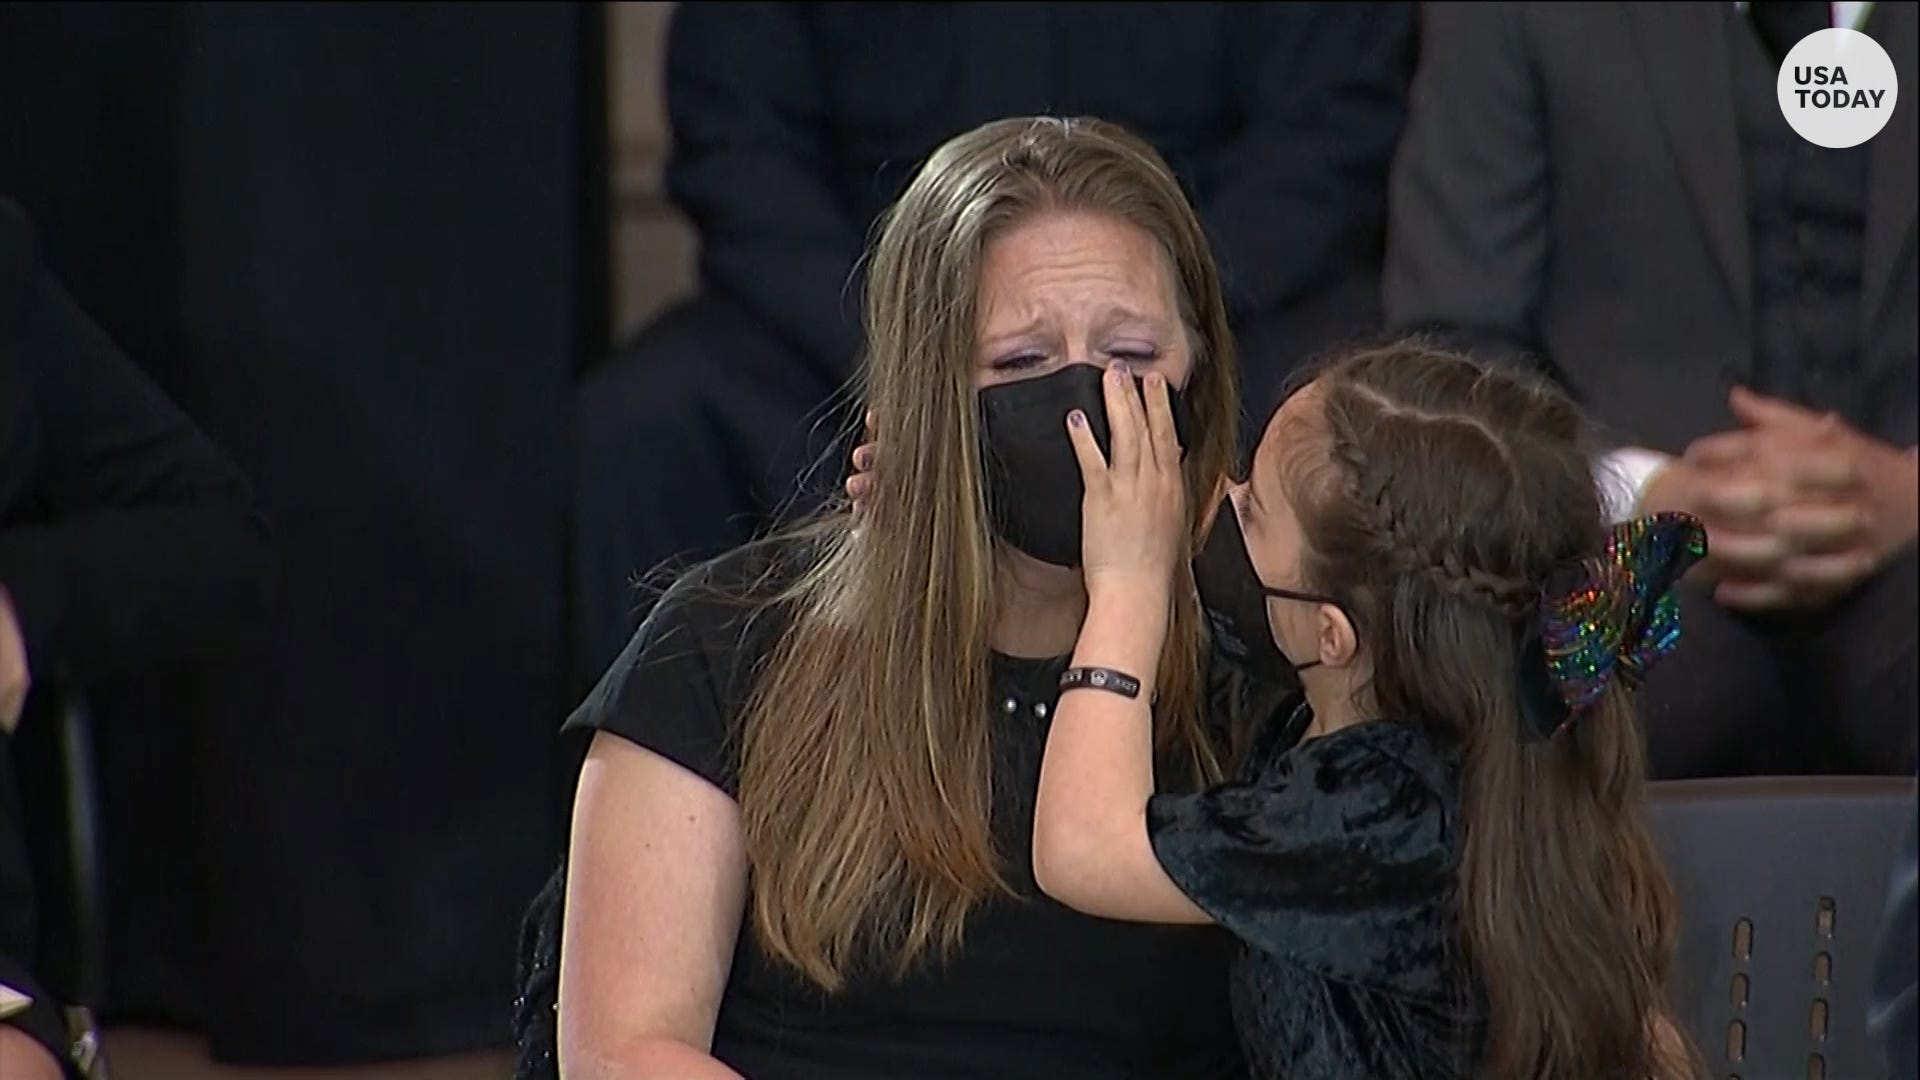 Daughter of fallen Capitol officer kisses mother as she becomes emotional